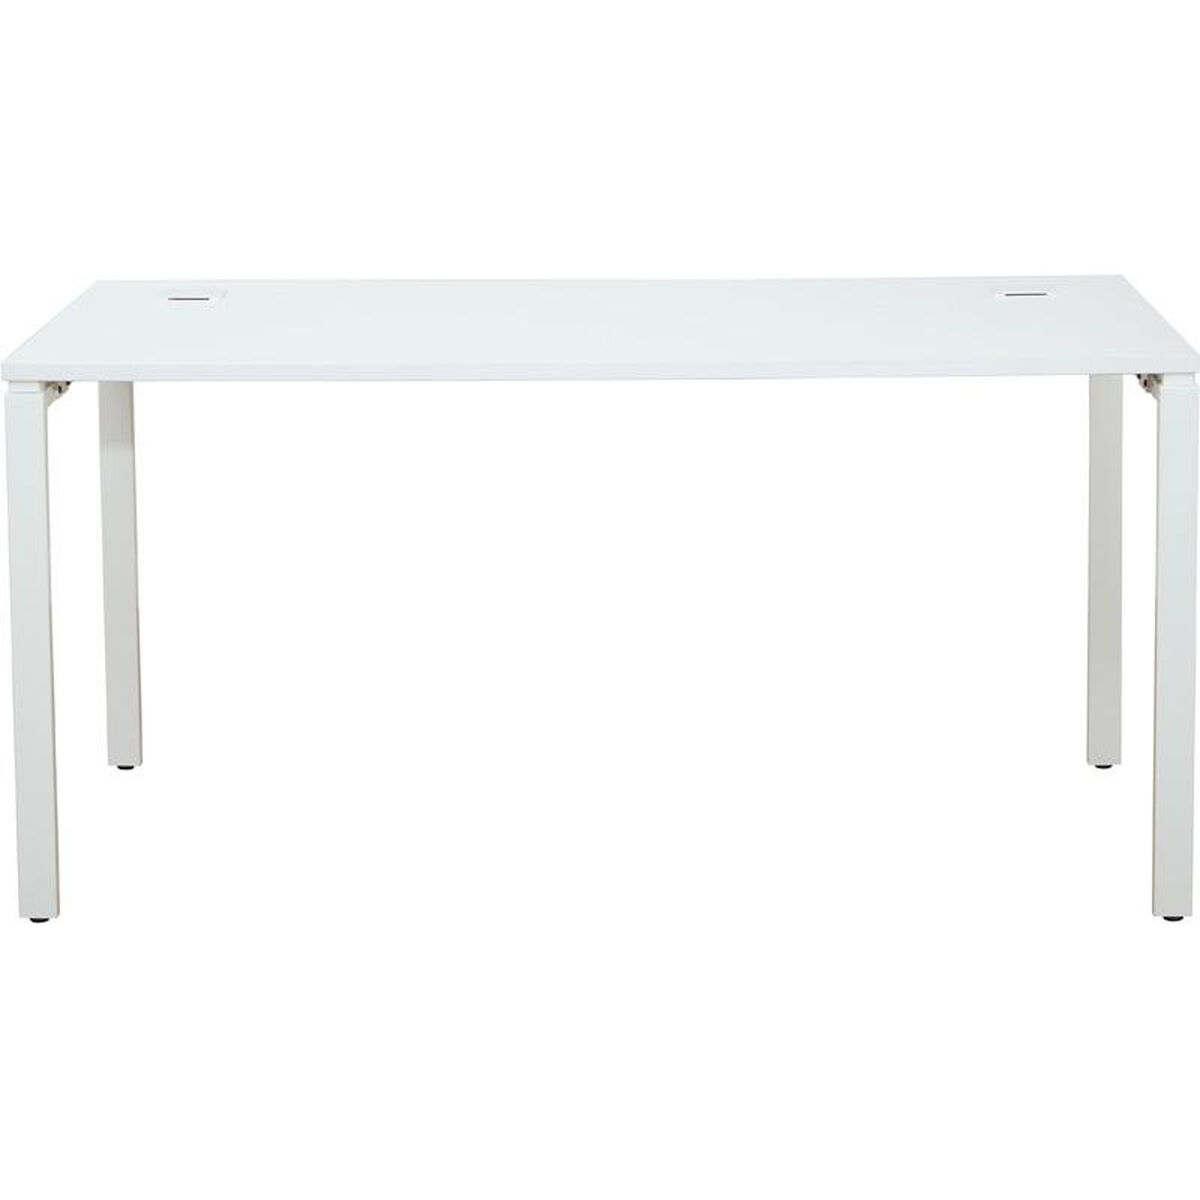 Our Pro Line Ii Prado 60 Writing Desk With Laminate Top White